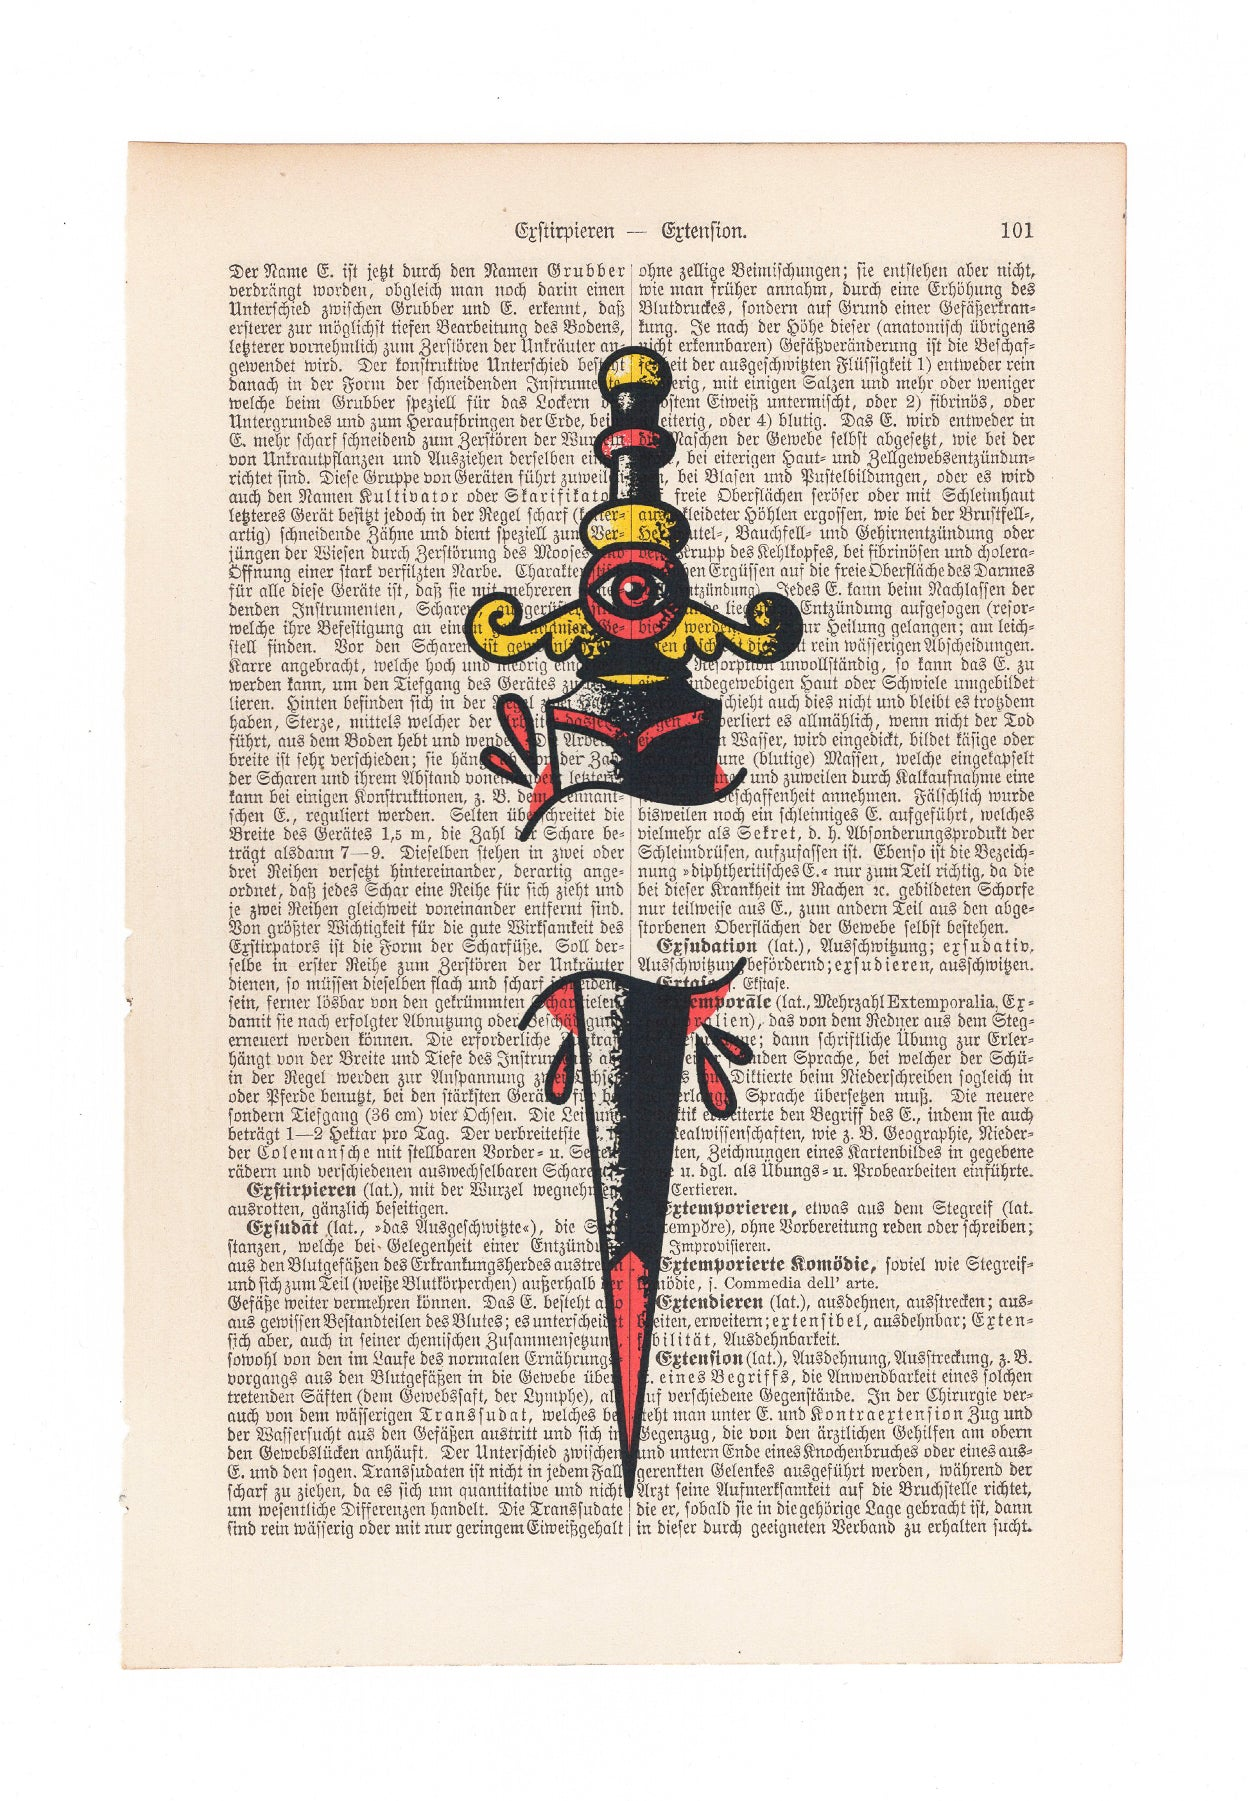 Old School Dagger - Art on Words